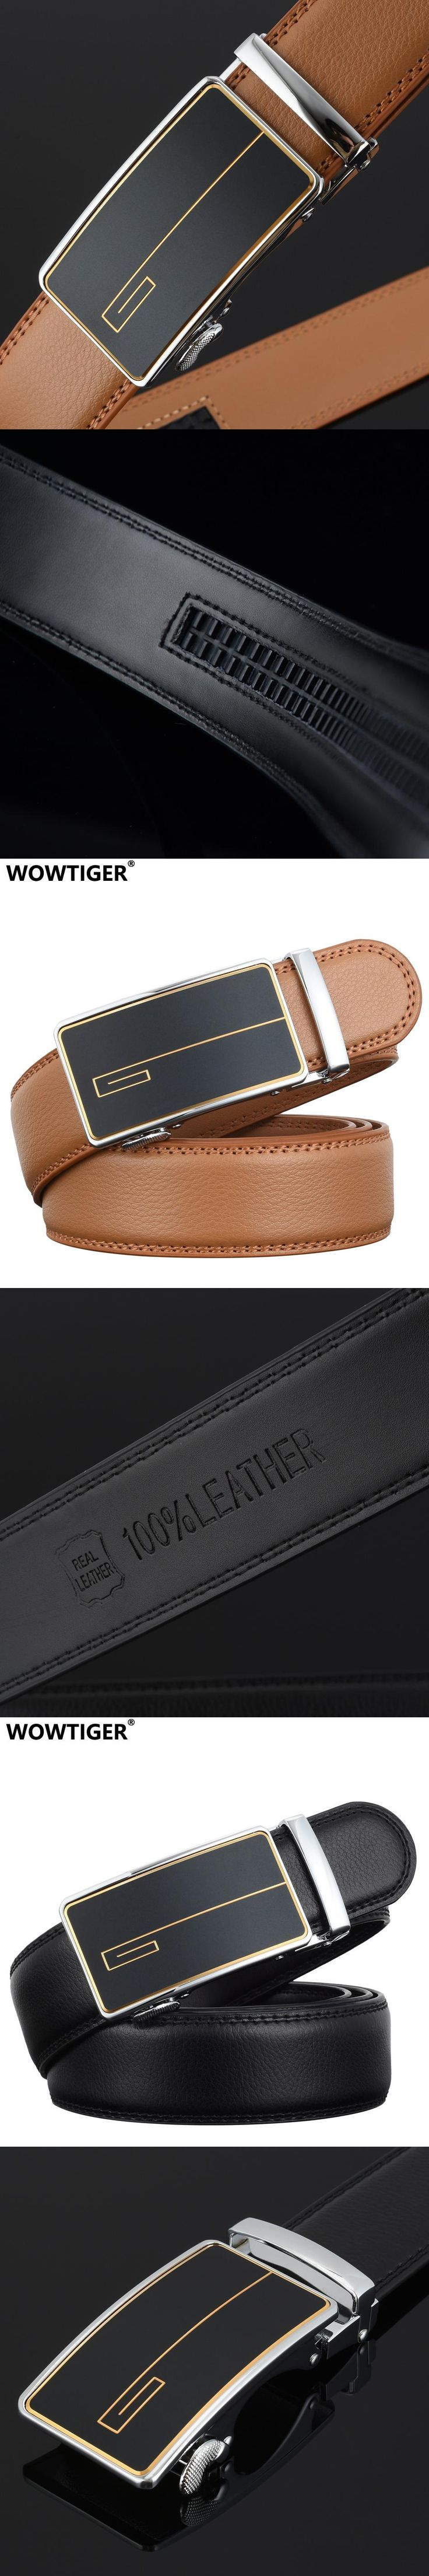 WOWTIGER Designer New Automatic buckle Belts for Men Sliding Buckle Ratchet Luxury fashion Leather Men Belt ceinture homme